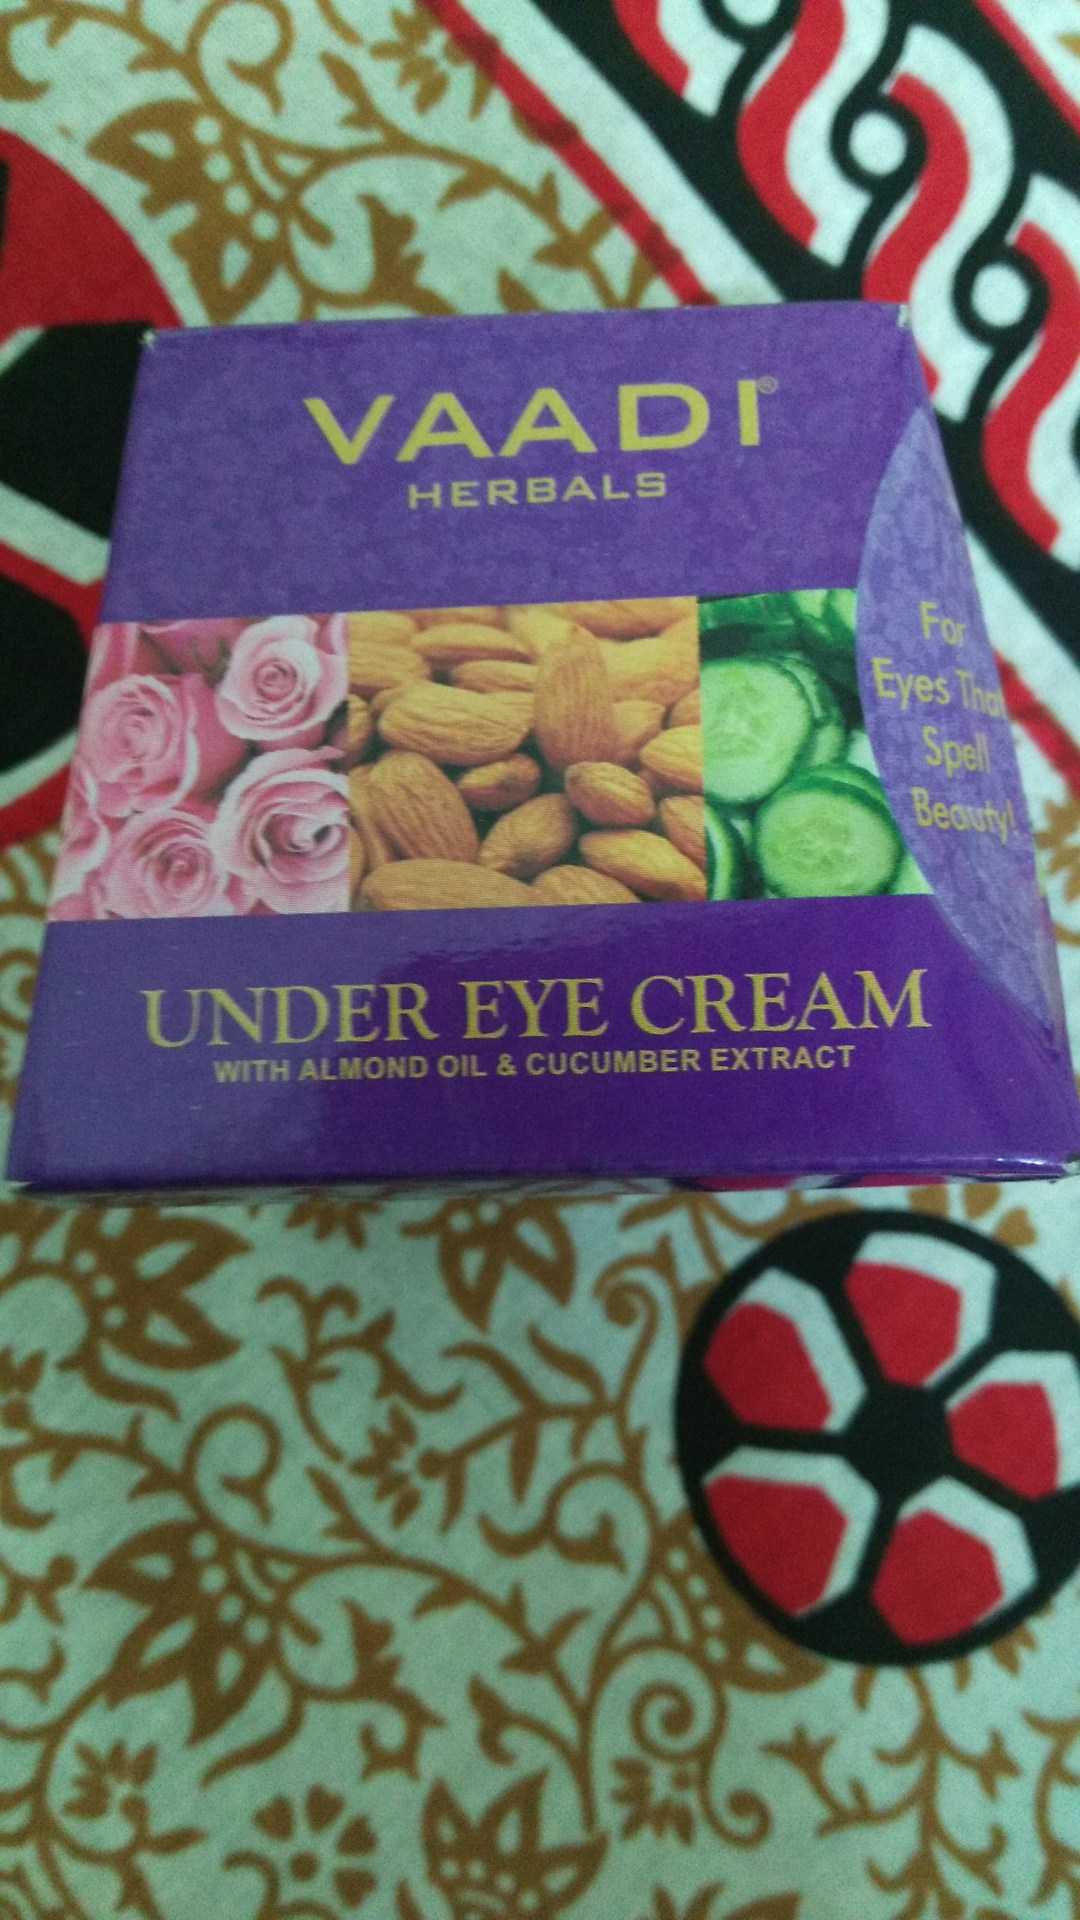 Vaadi Herbals Under Eye Cream with Almond Oil & Cucumber Extract